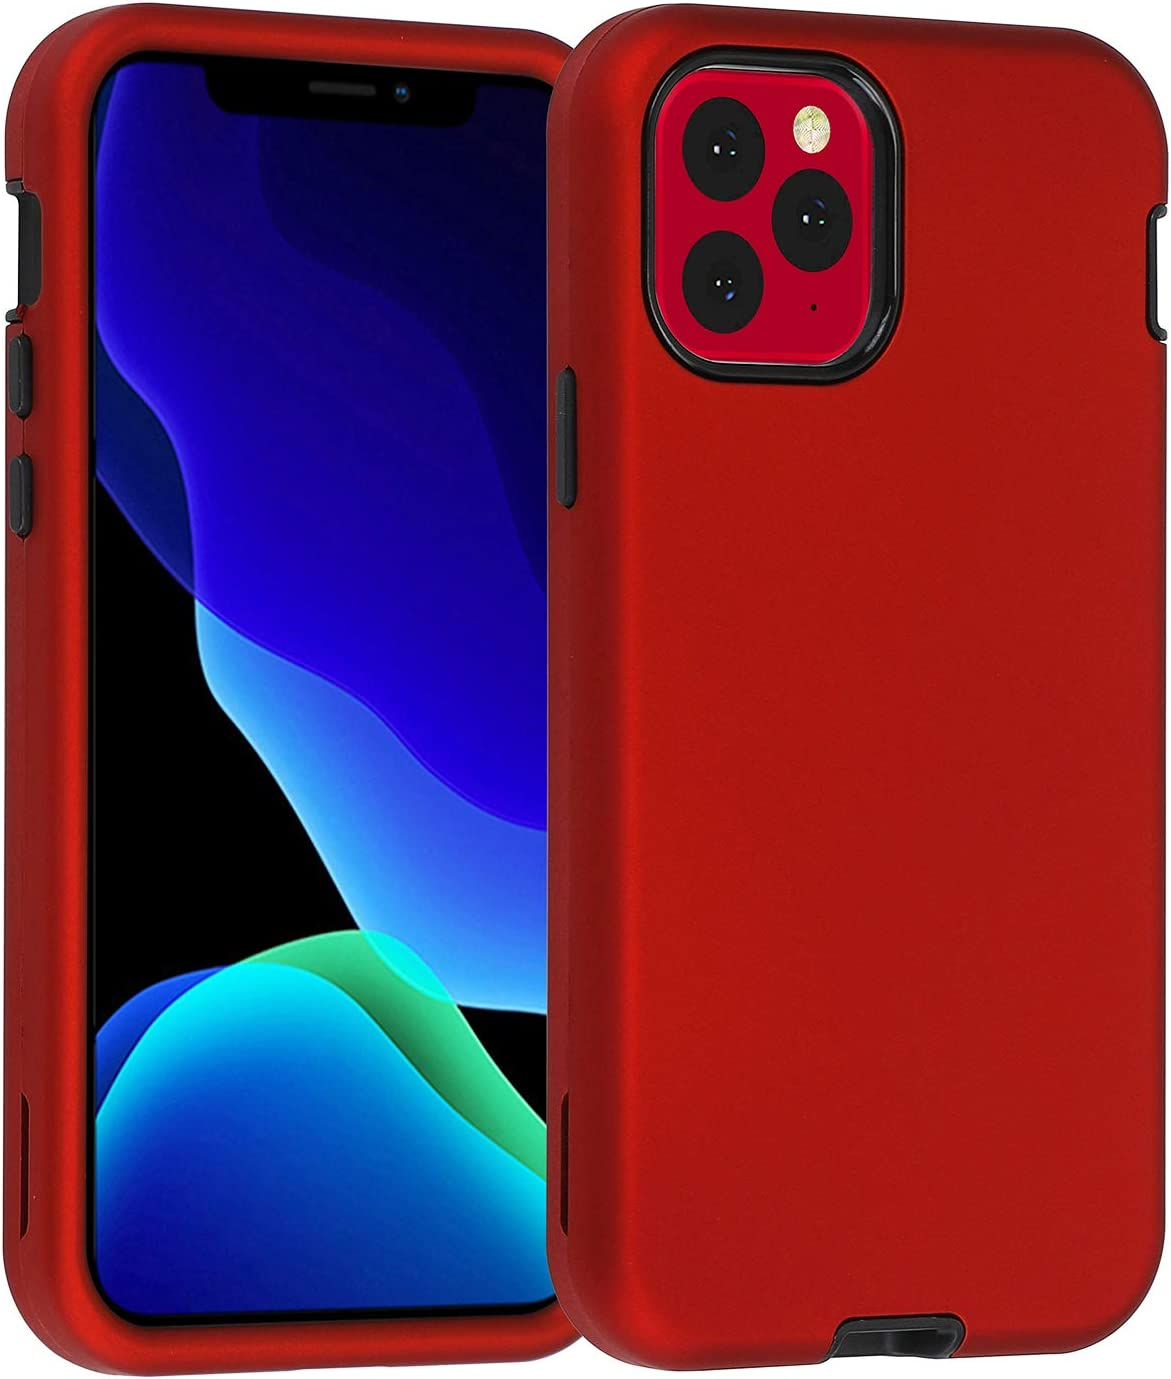 Co-Goldguard Case for iPhone 11 Pro, Heavy Duty 3 in 1 Cover Shockproof Drop-Proof Scratch-Resistant Shell Design for Apple iPhone 11 Pro 5.8 inch,Red